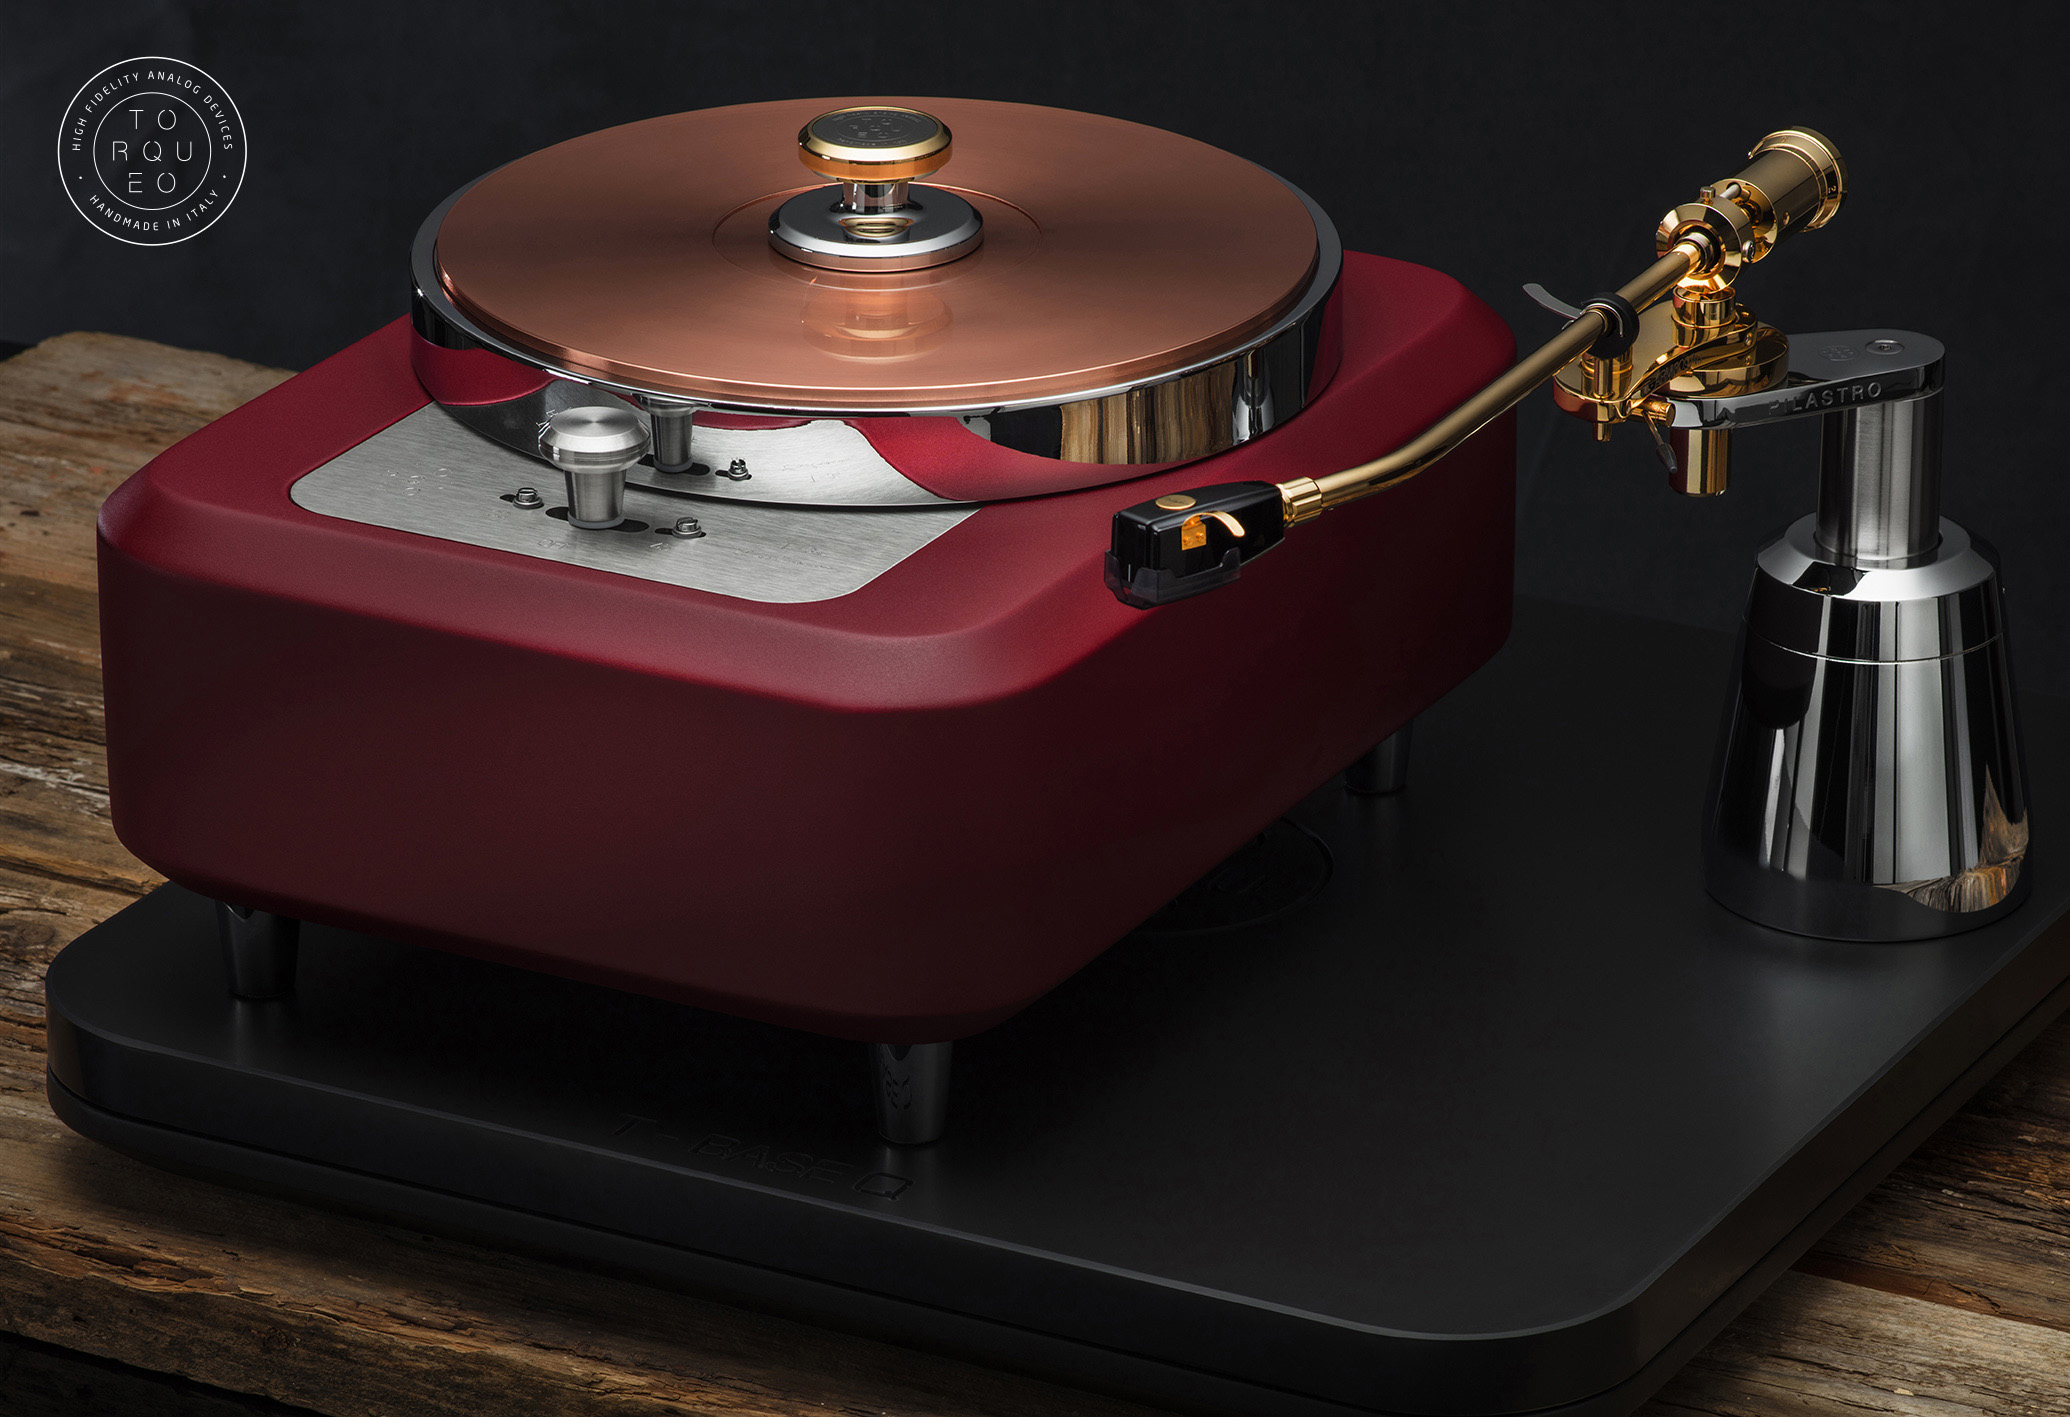 Torqueo Audio T-34 EXCLUSIVE MARSALA COMPACT 02